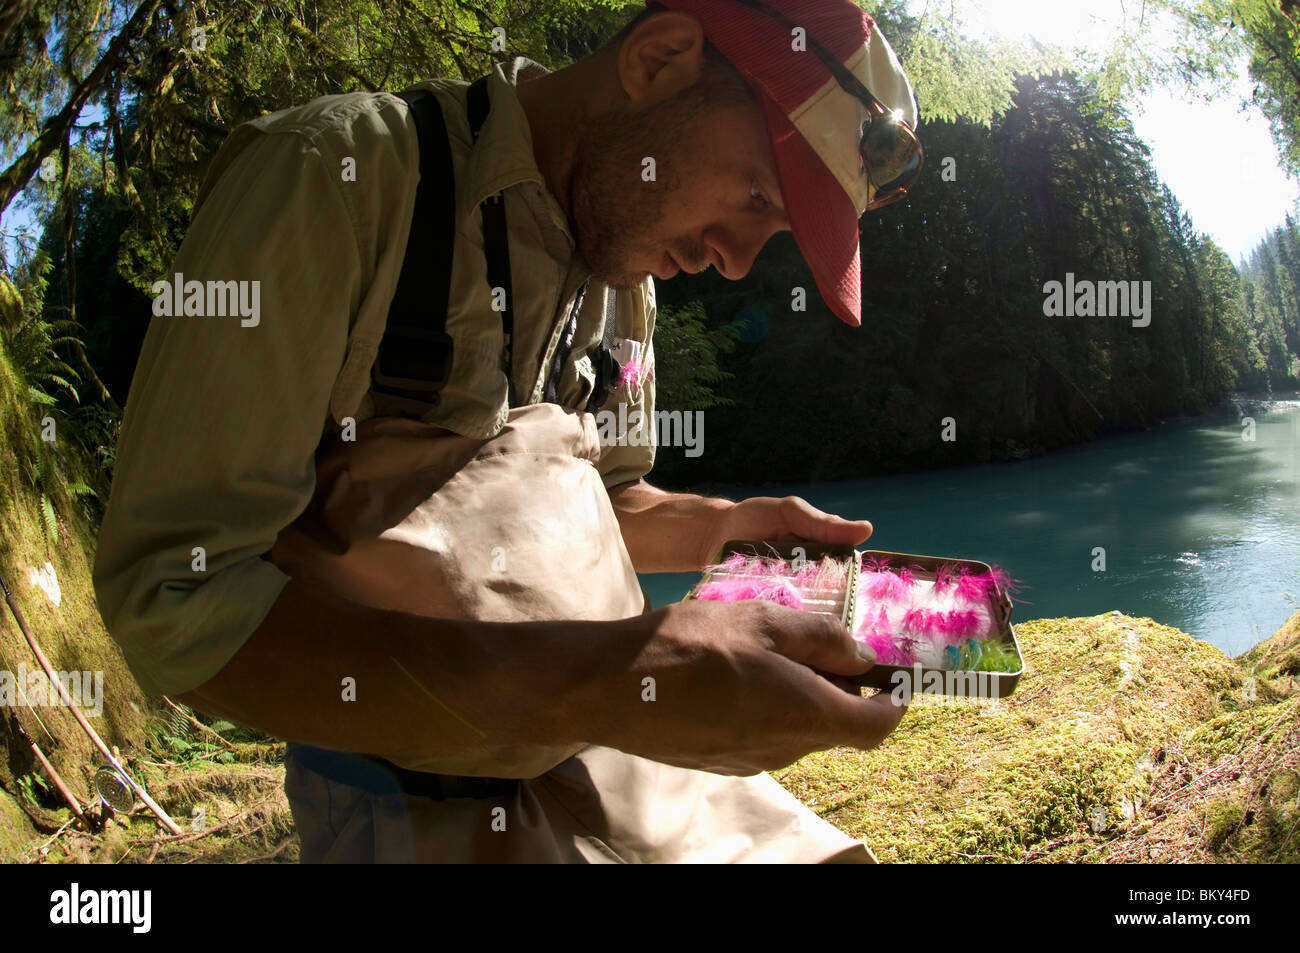 A man picks a fly from his fly box while  fishing in Squamish, British Columbia. - Stock Image